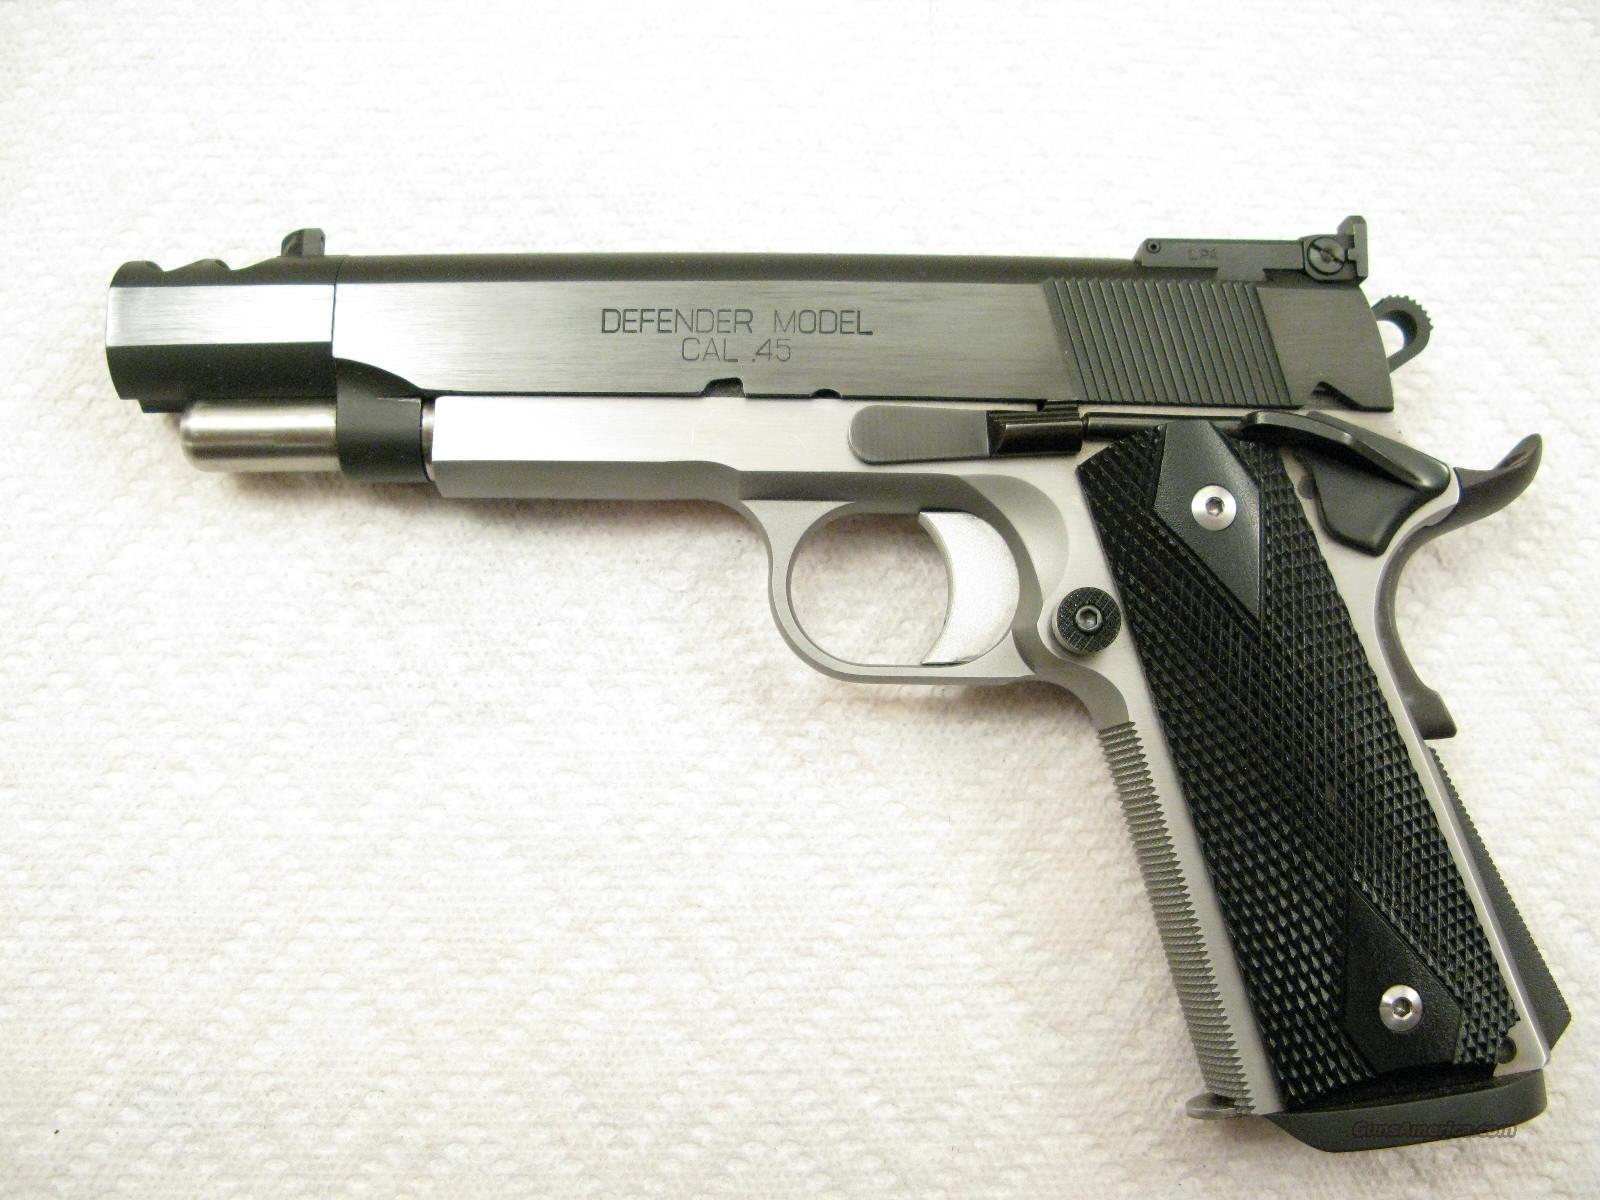 PDP Defender .45 ACP Full Race Tactical Pistol Like New  Guns > Pistols > Springfield Armory Pistols > 1911 Type